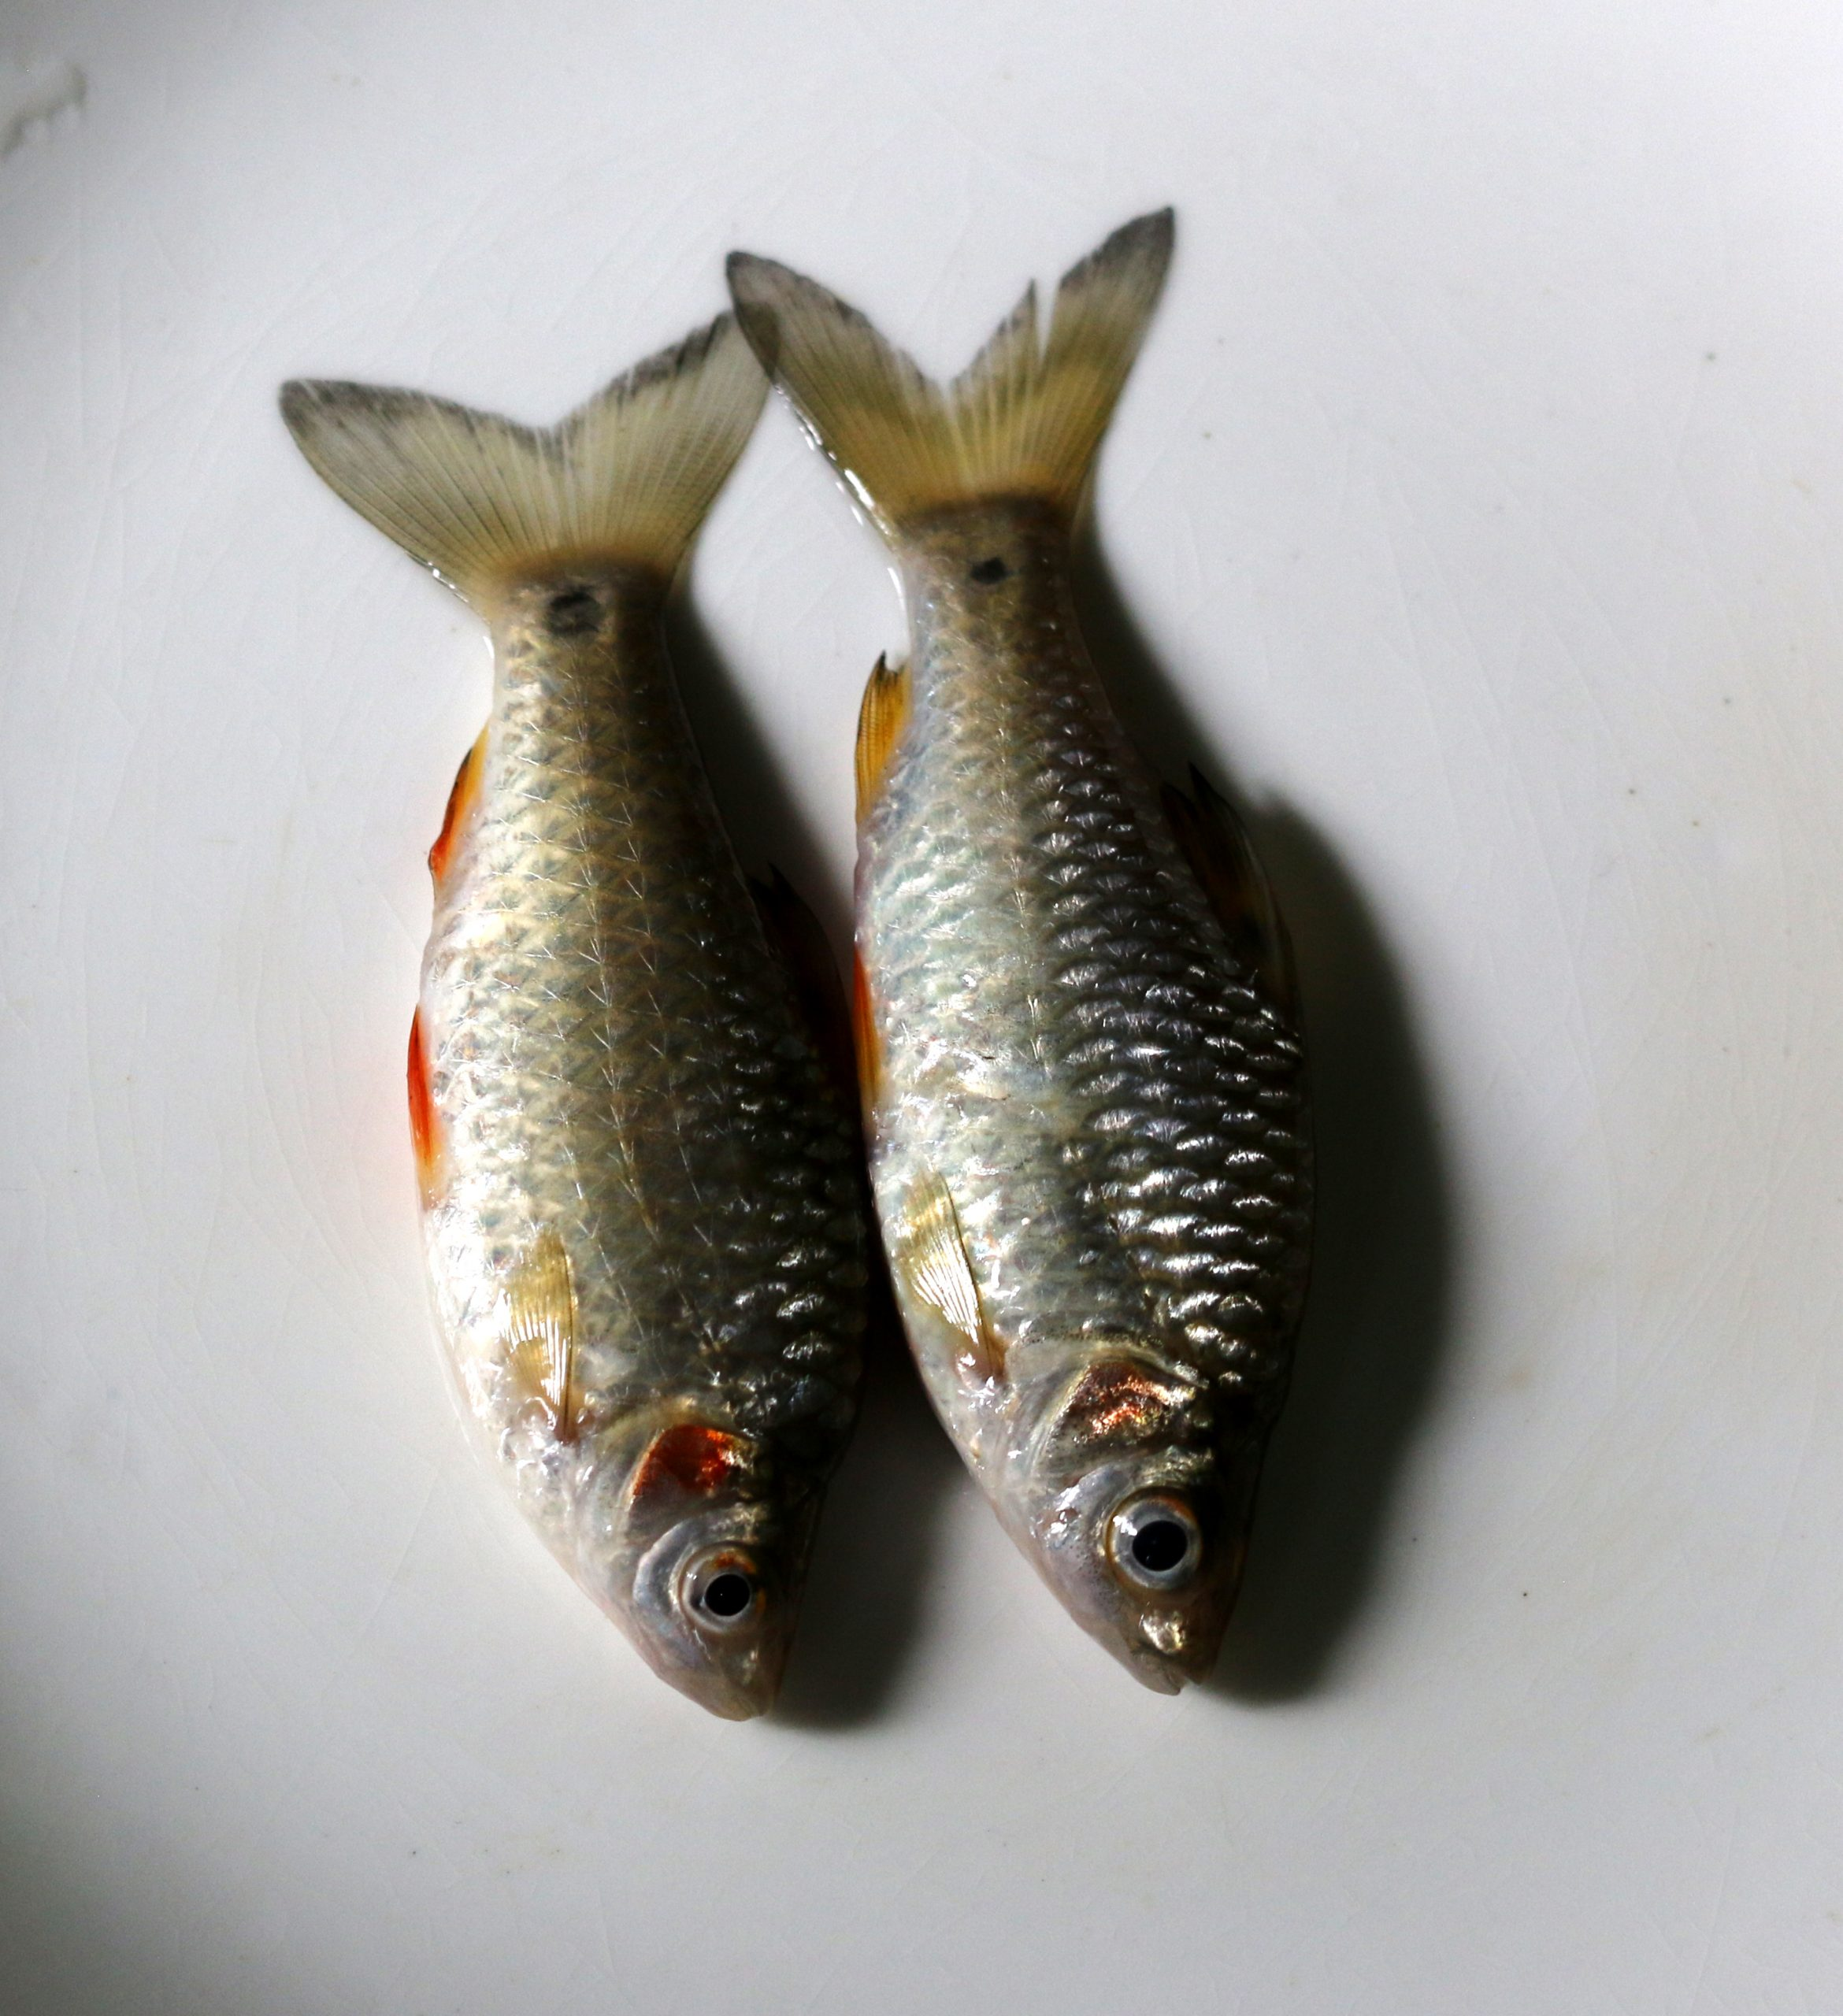 Pair of Fish in the Plate on Focus